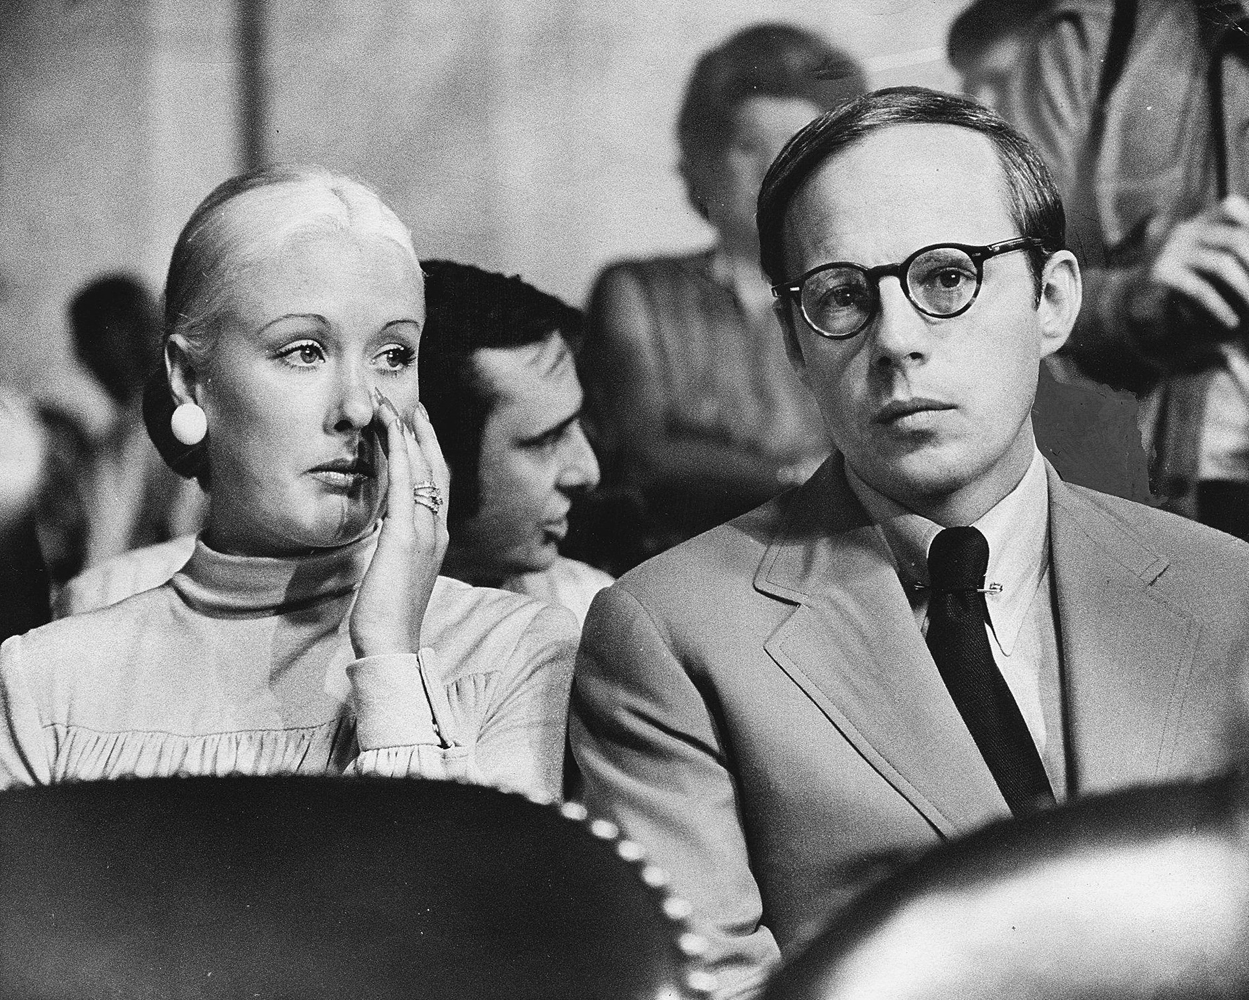 James Atherton's photograph of former presidential aide John Dean III as he waits to testify before the Senate Committee investigating Watergate, where he claimed that Nixon participated in the cover-up, Washington, D.C., June 25, 1973.